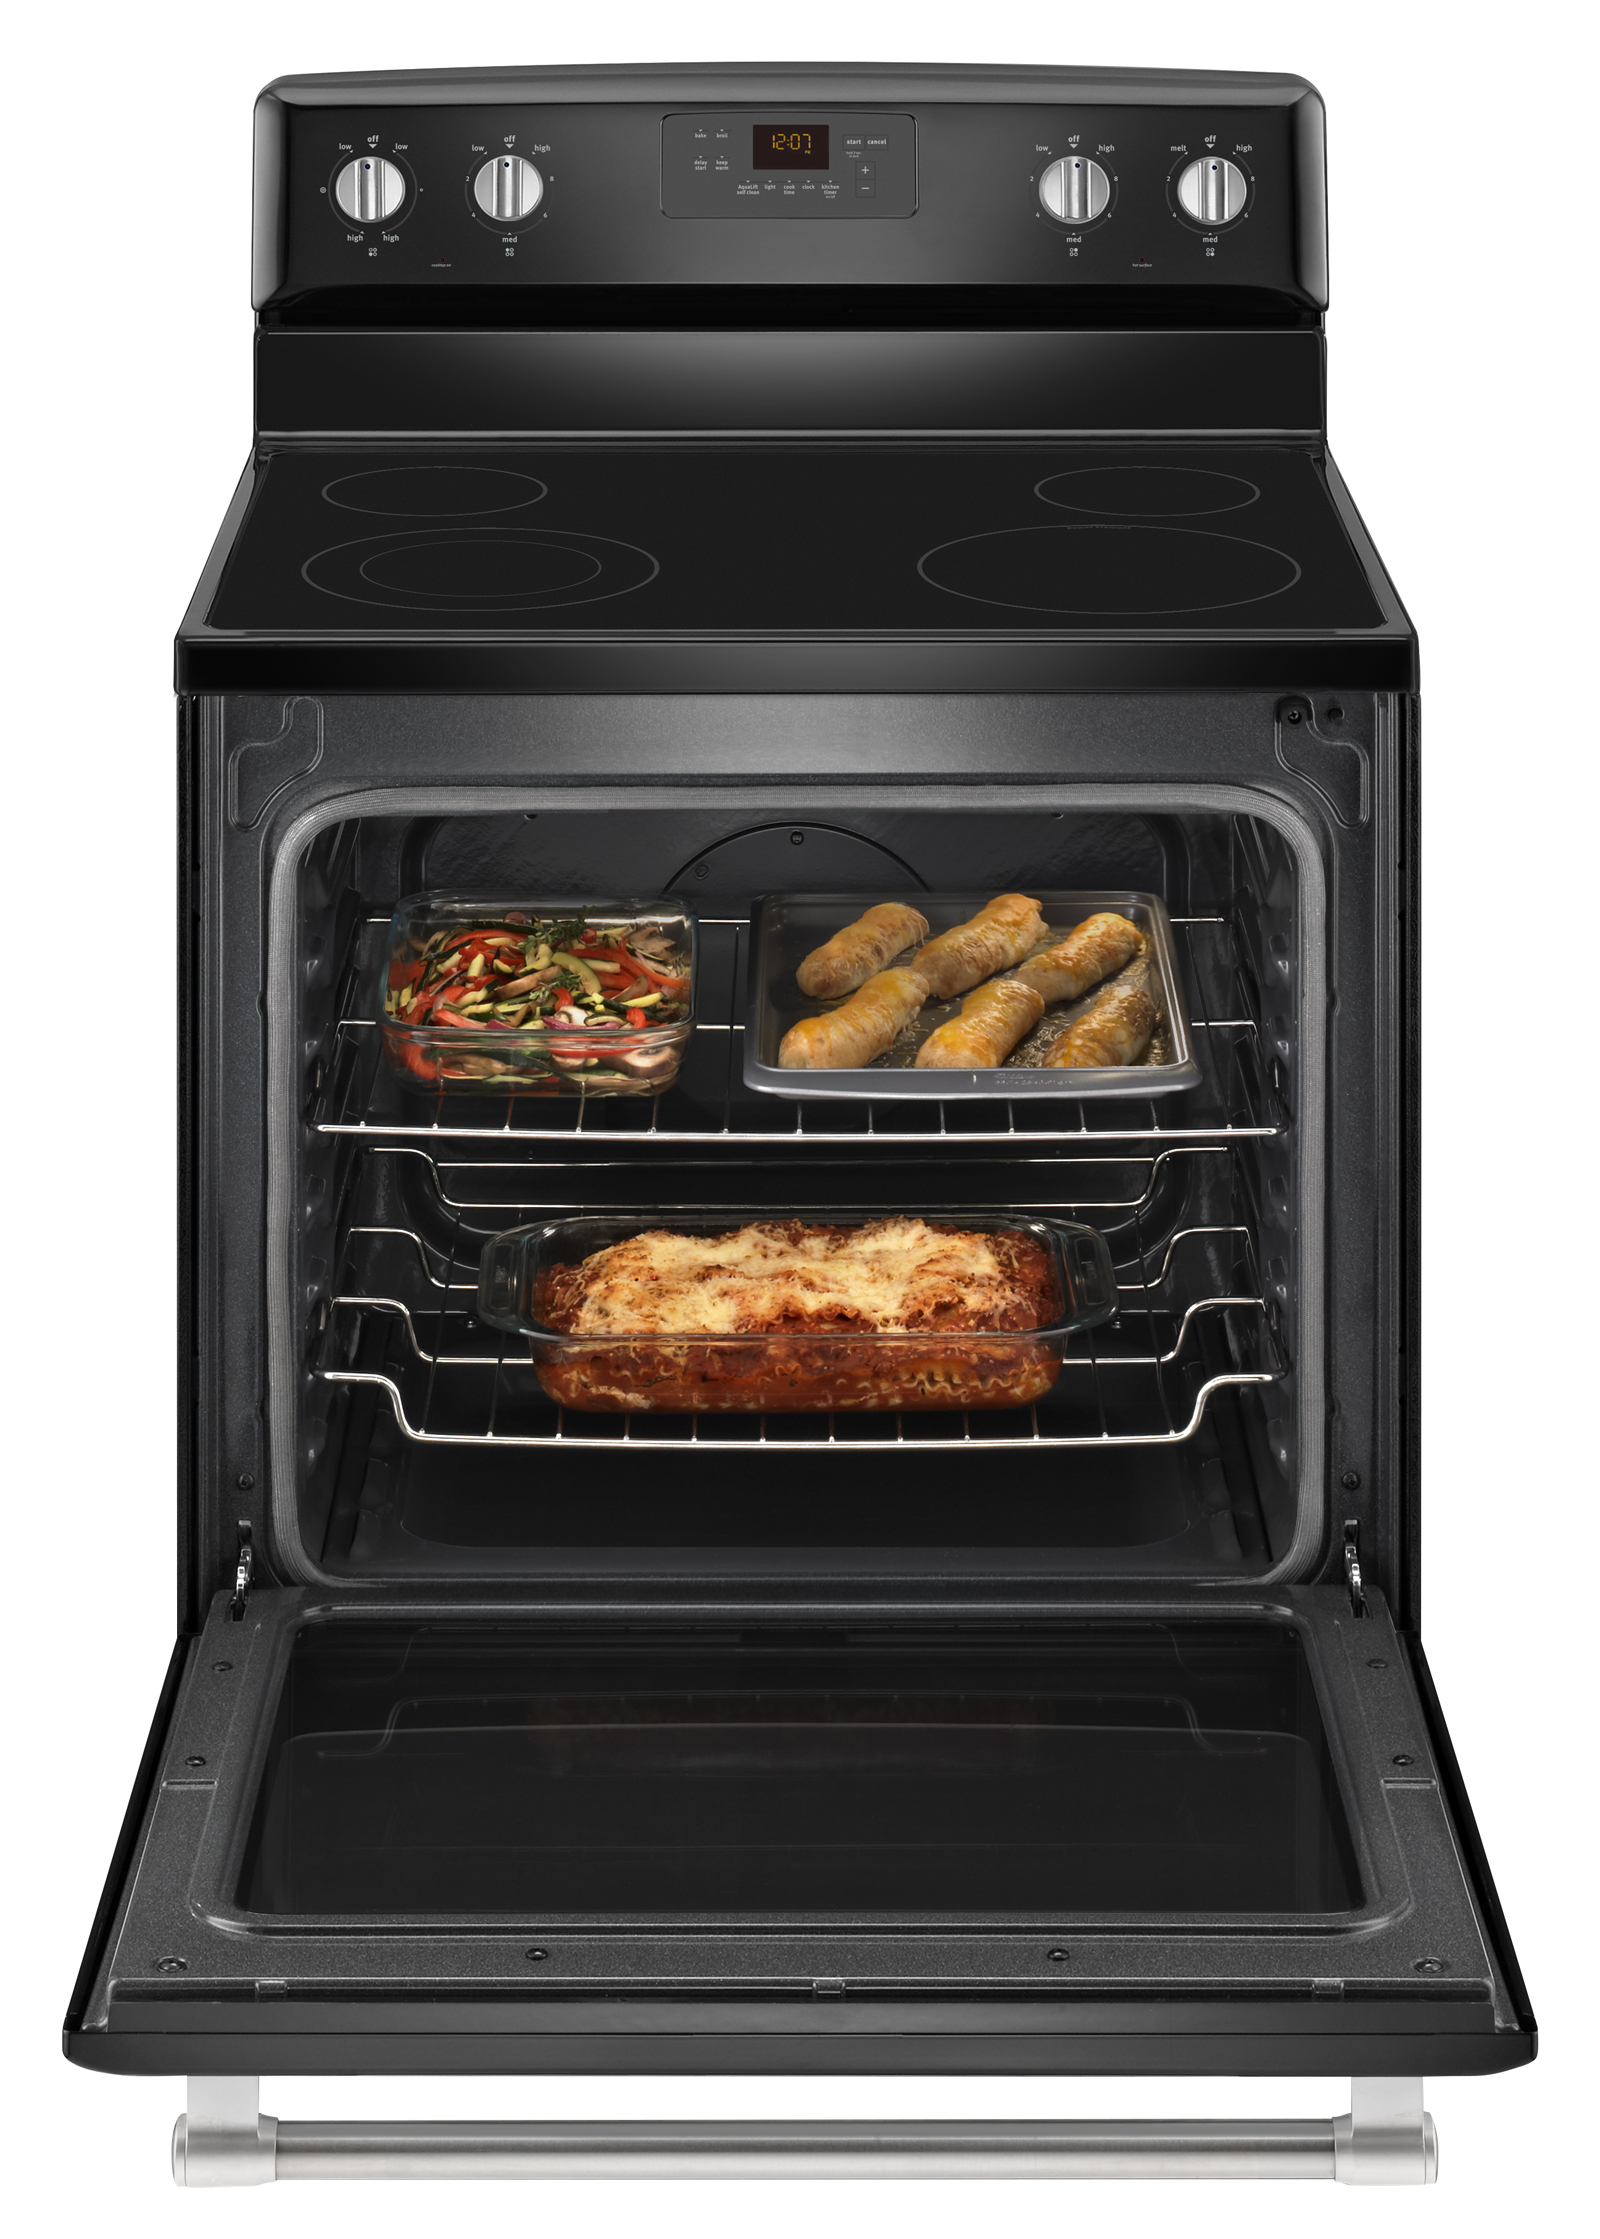 Maytag MER8600DE 6.2 cu. ft. Electric Range w/ Dual Element - Black w/ Stainless Handle